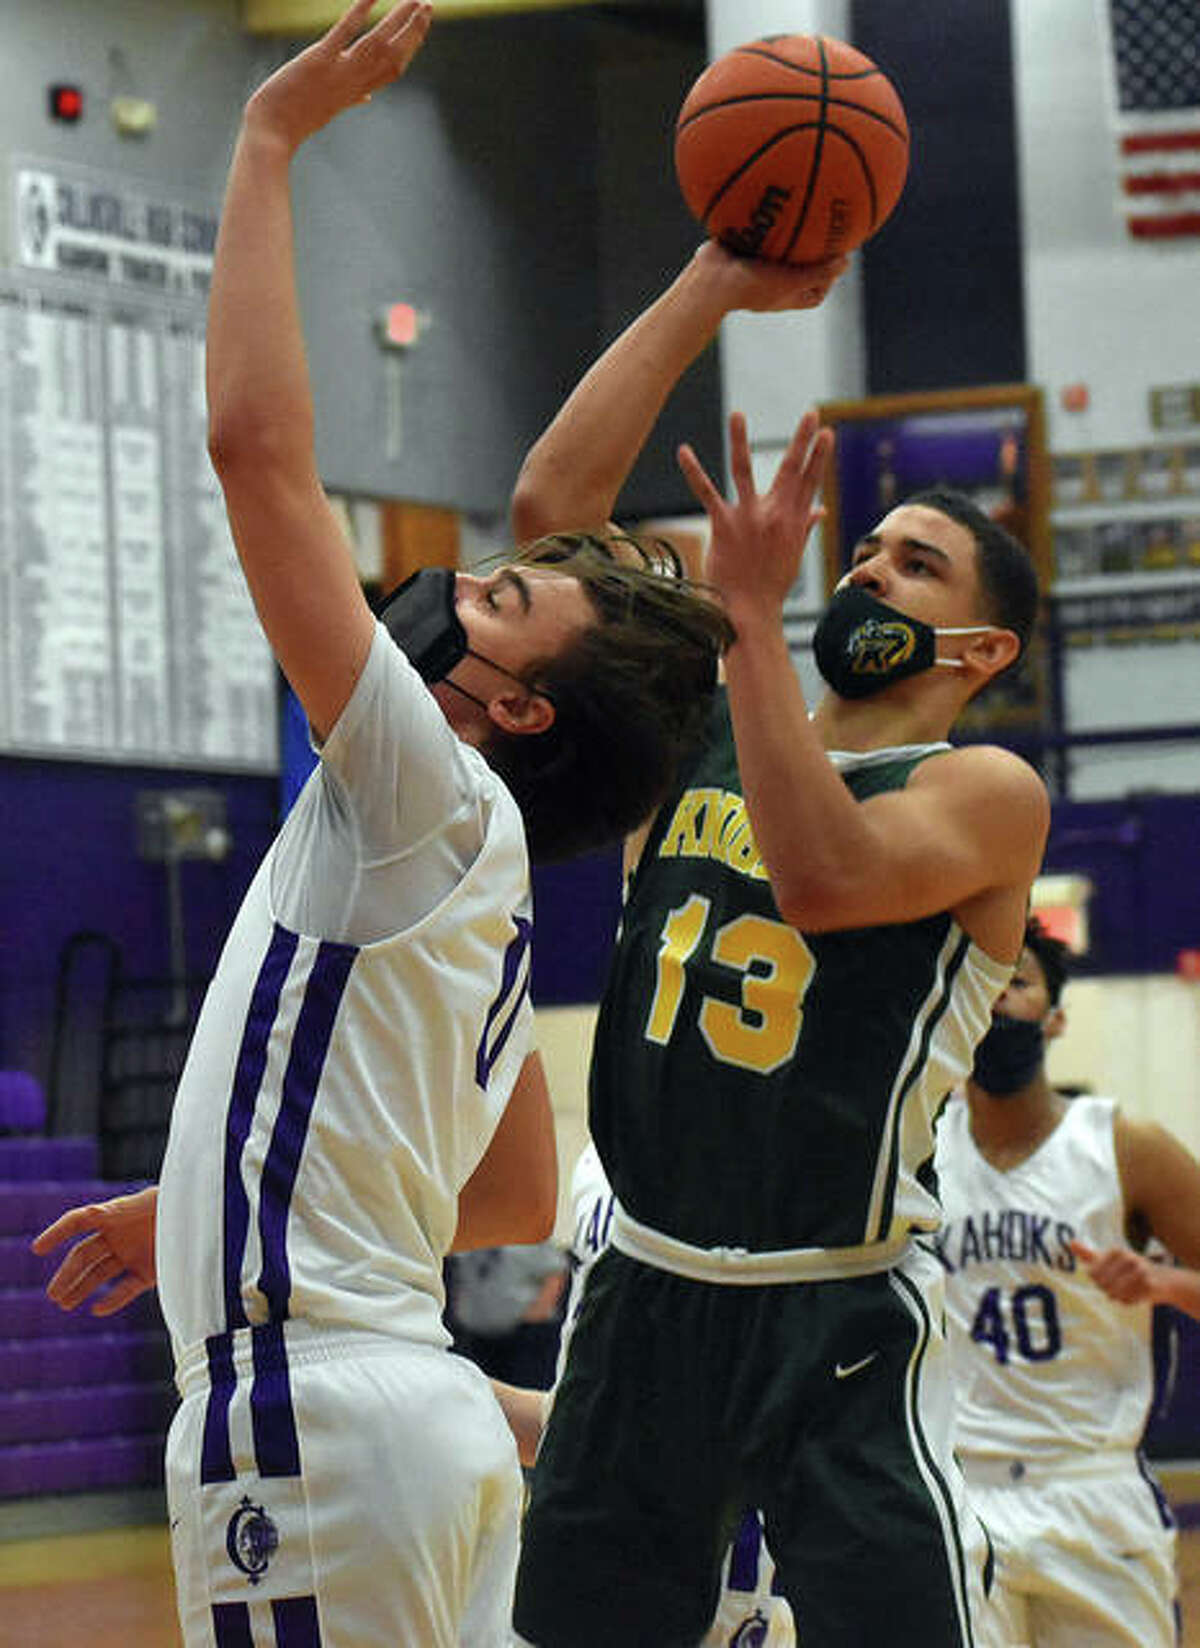 Metro-East Lutheran senior AJ Smith, right, puts up a shot over Collinsville's Nate Hall during a game earlier this season inside Vergil Fletcher Gymnasium in Collinsville.